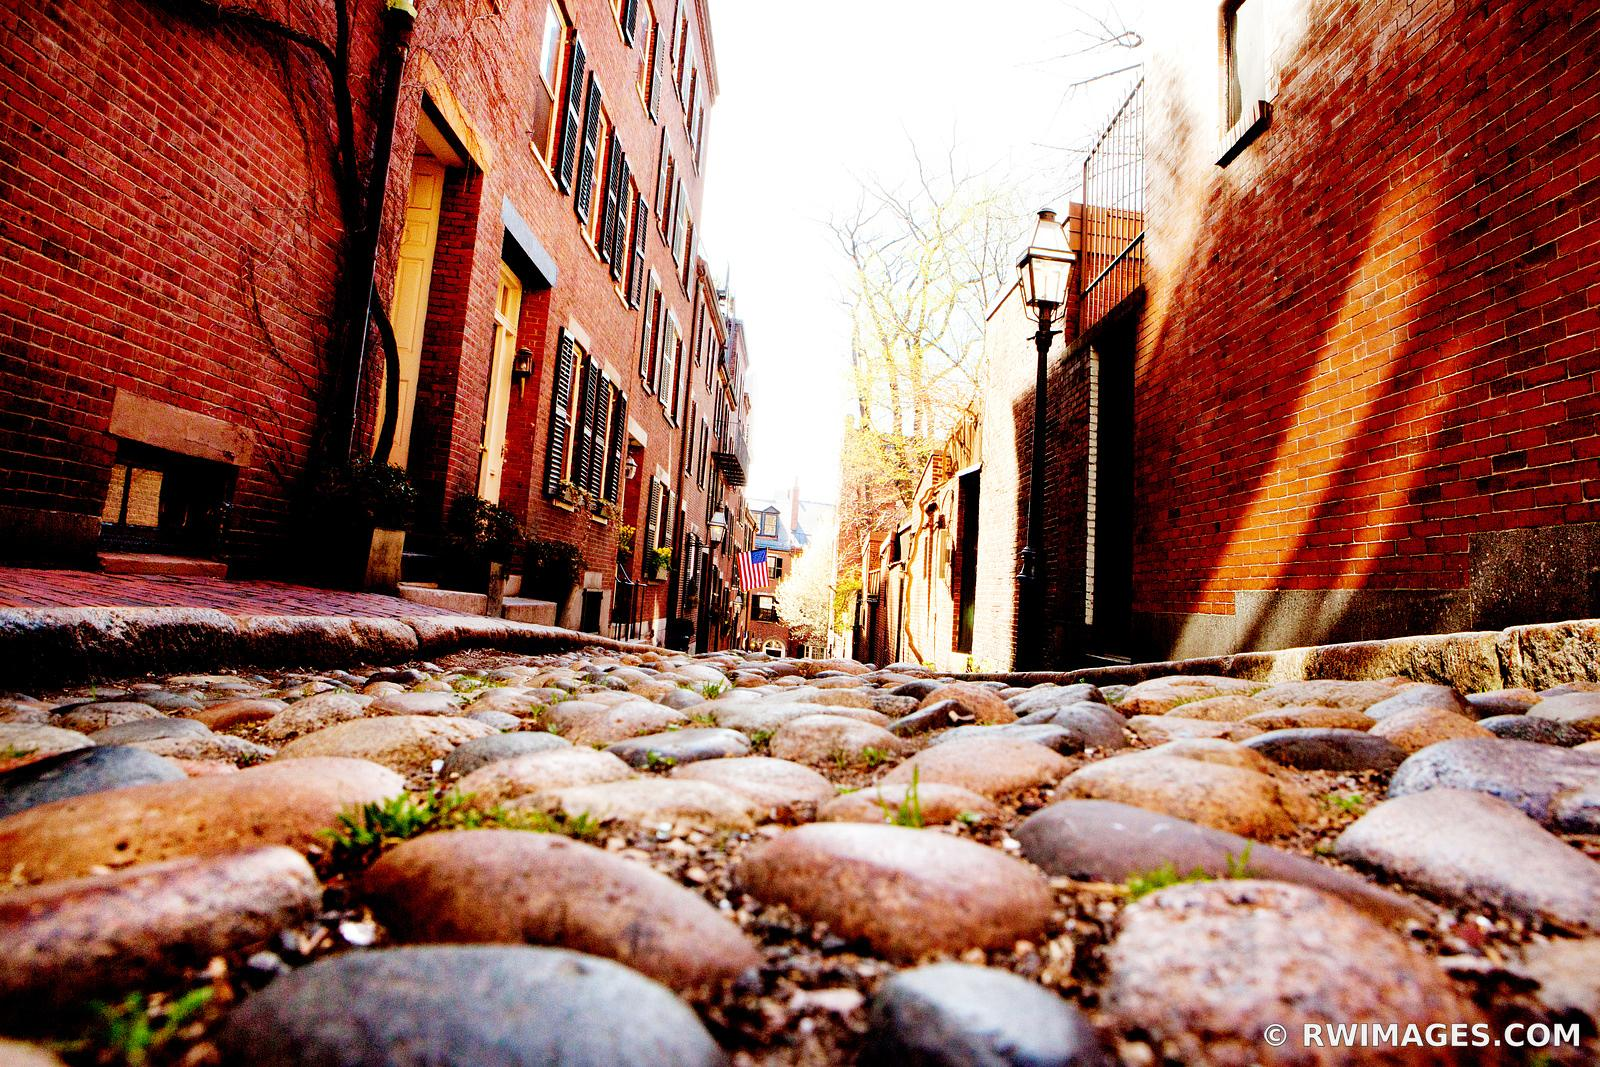 HISTORIC BOSTON BEACON HILL ACORN STREET COBBLESTONE STREET RED BRICK COLOR